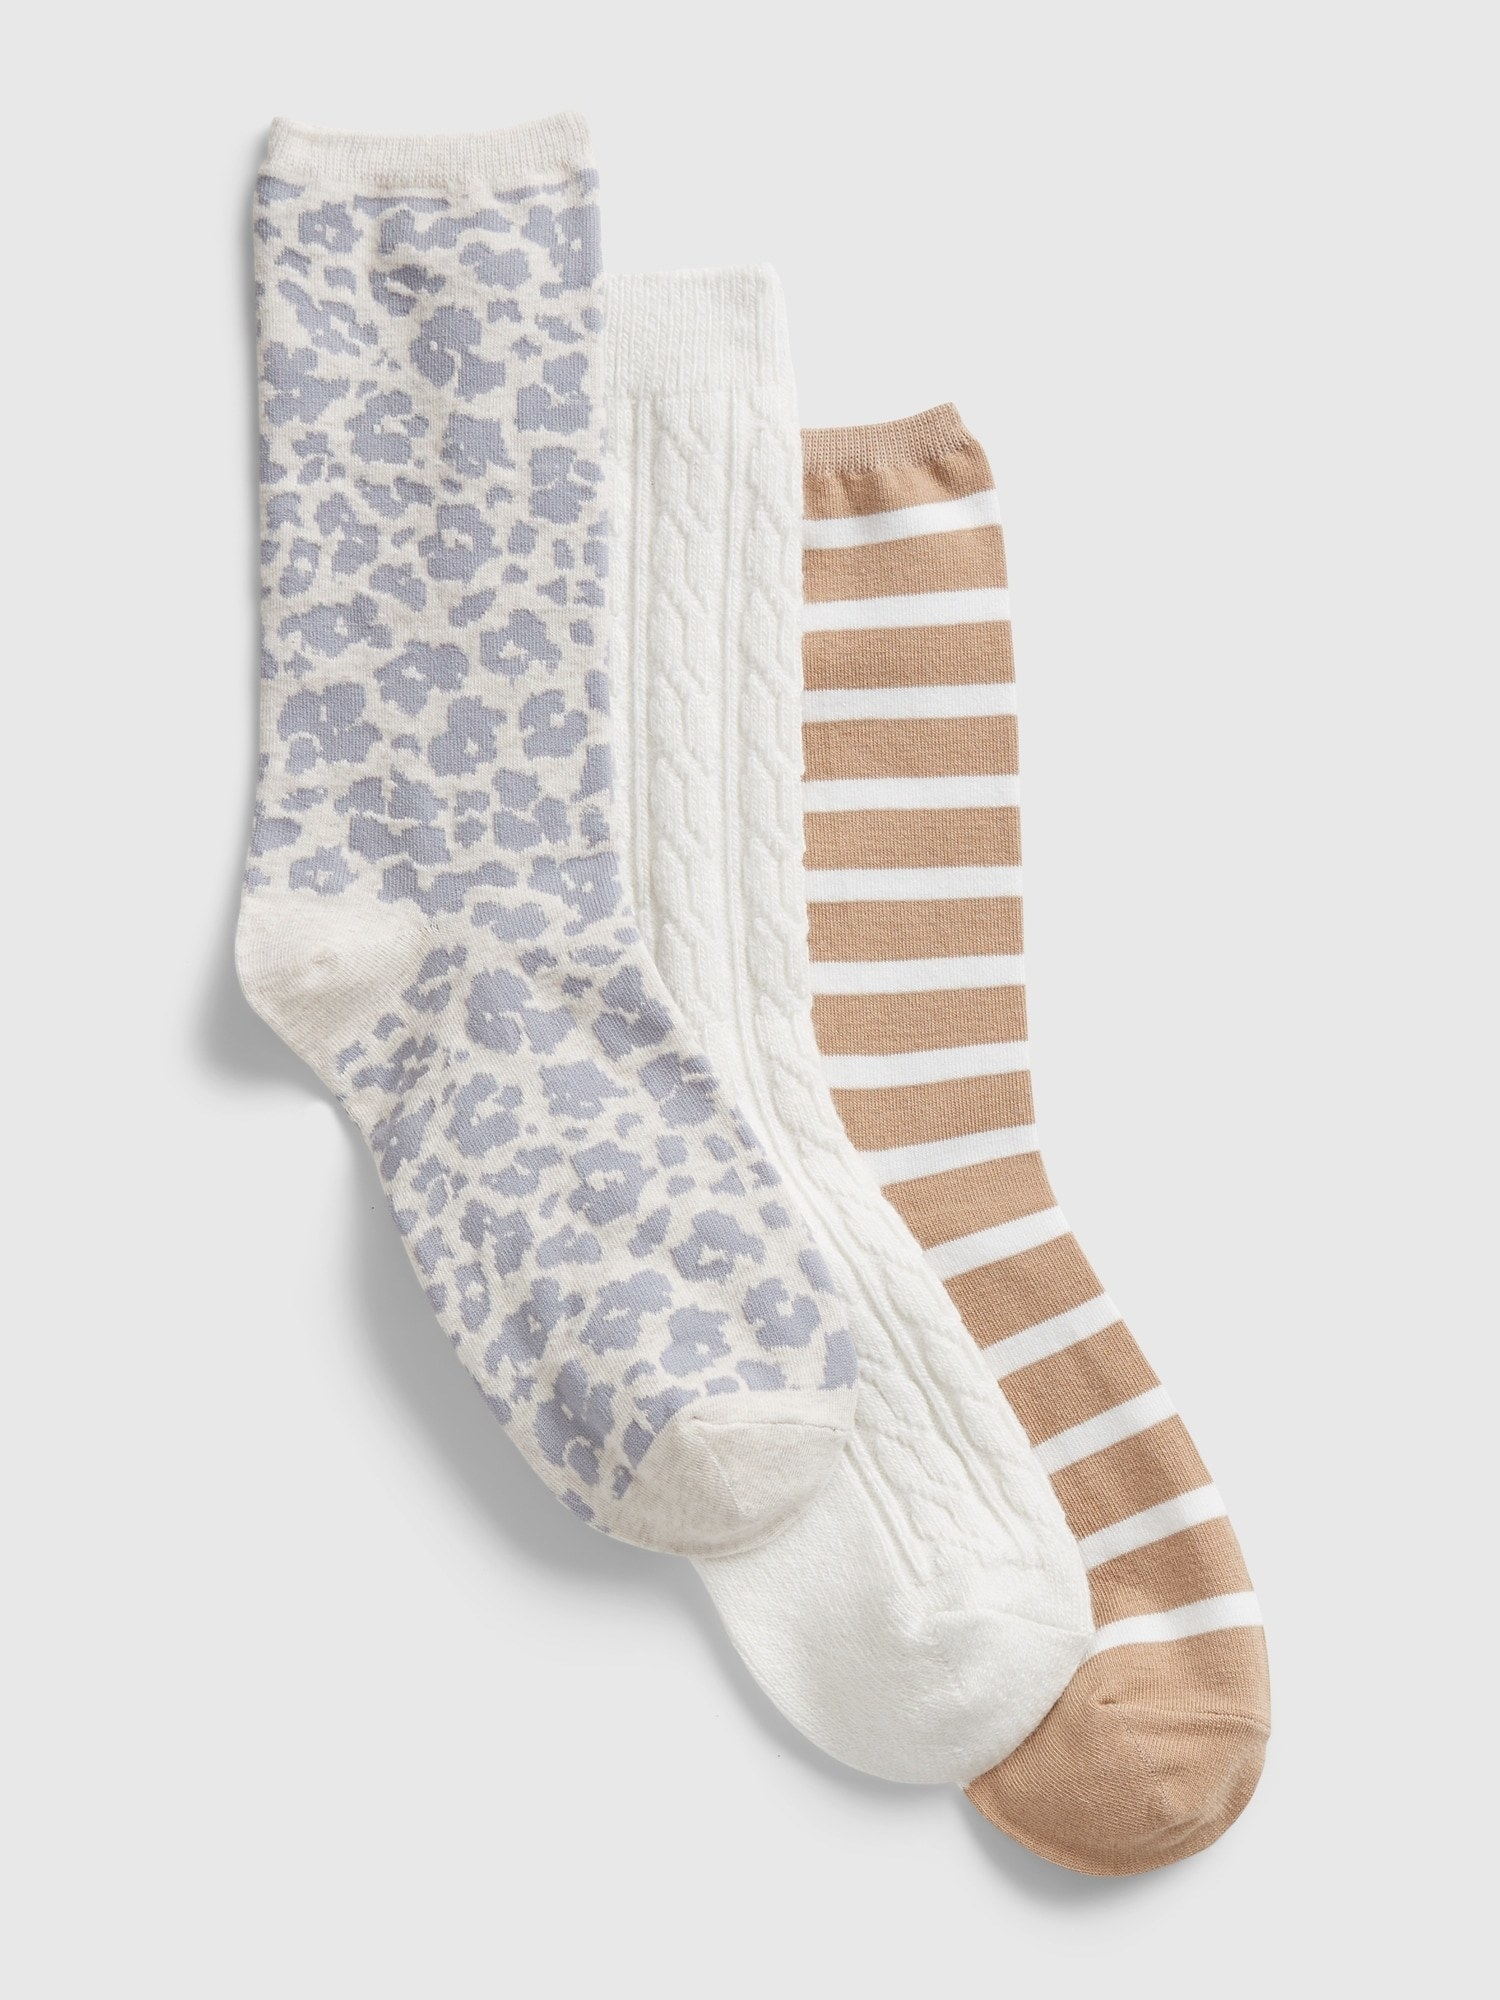 three pairs of socks, one white with gray leopard print, one white and knit, and one camel with white vertical stripes